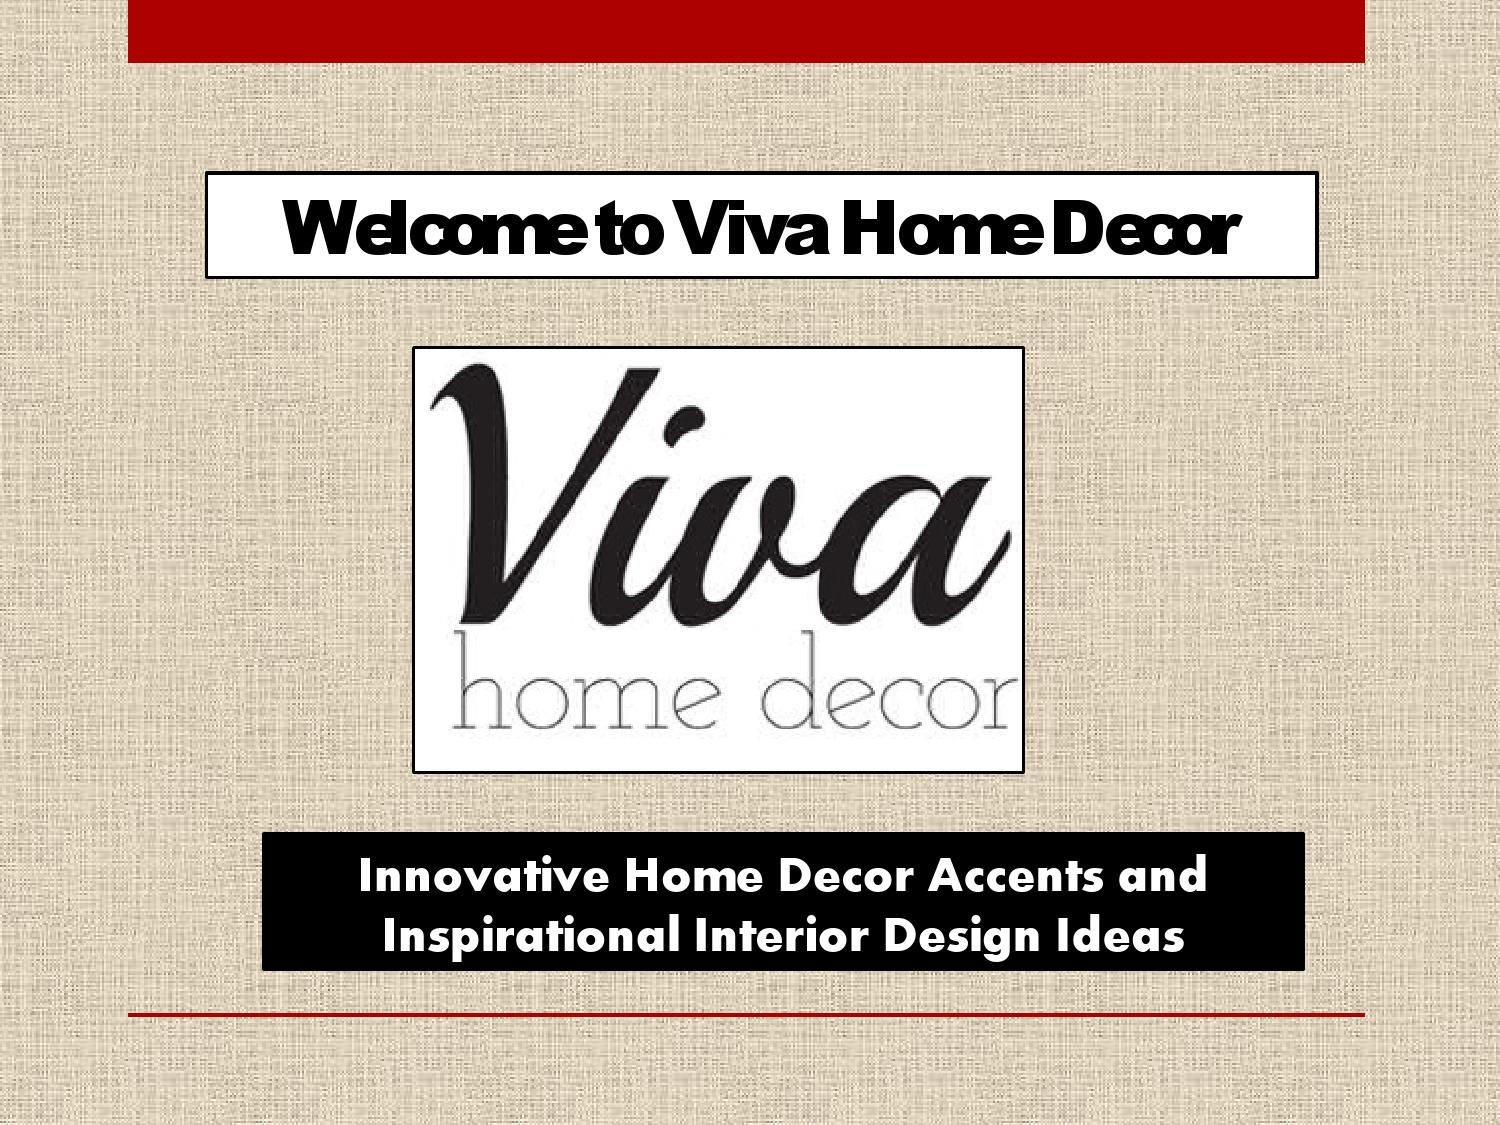 Wholesale Home Decor Accents Interior Design Ideas By Viva Home Decor Issuu